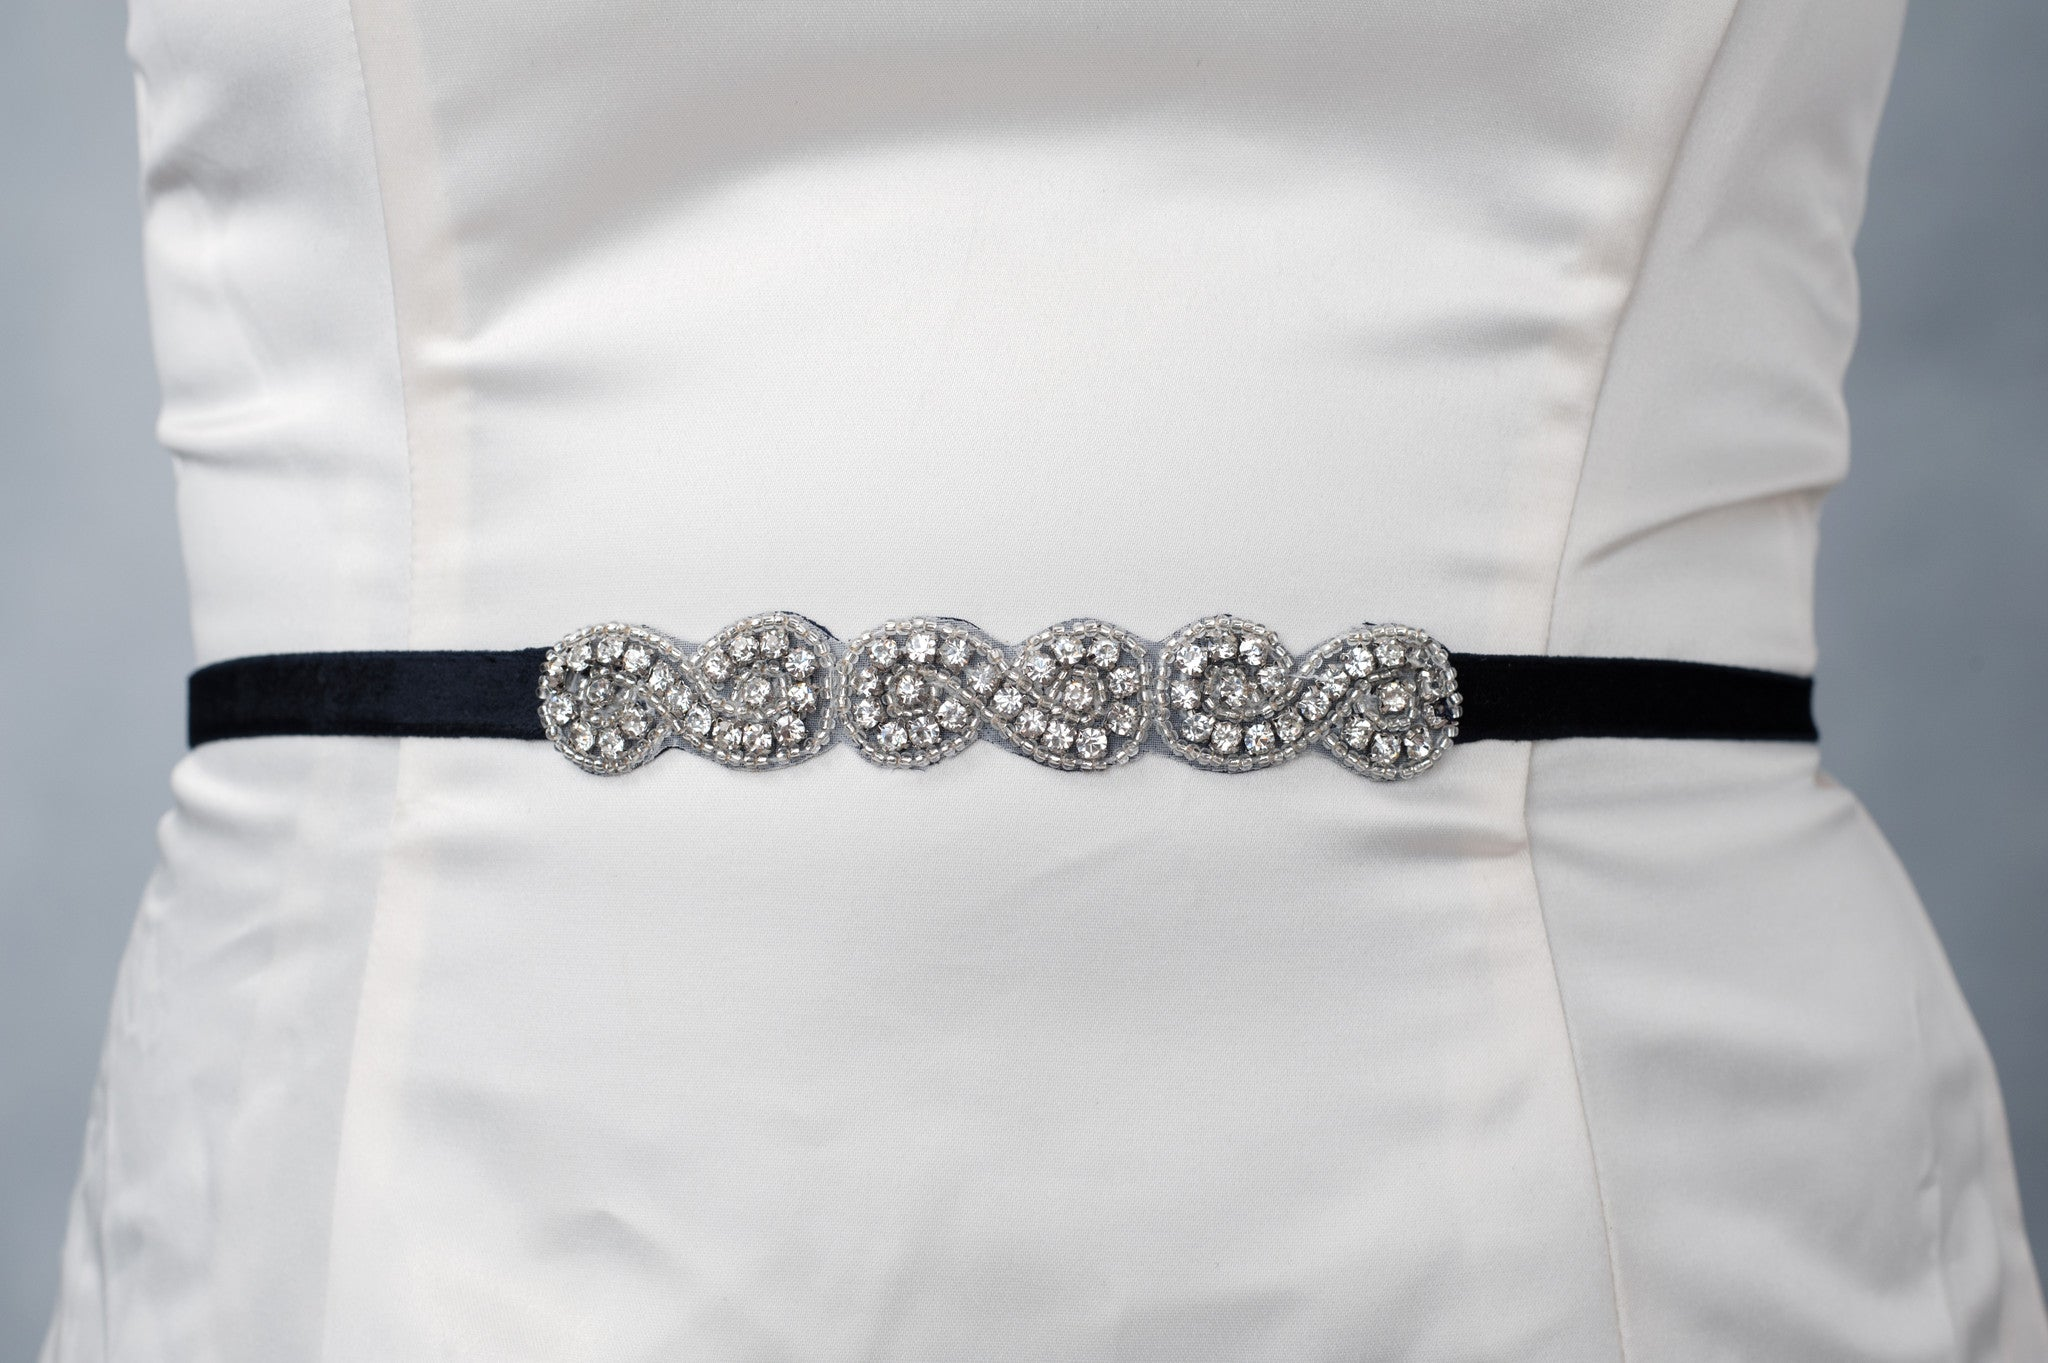 lea Crystal bridesmaids belt - SB170709